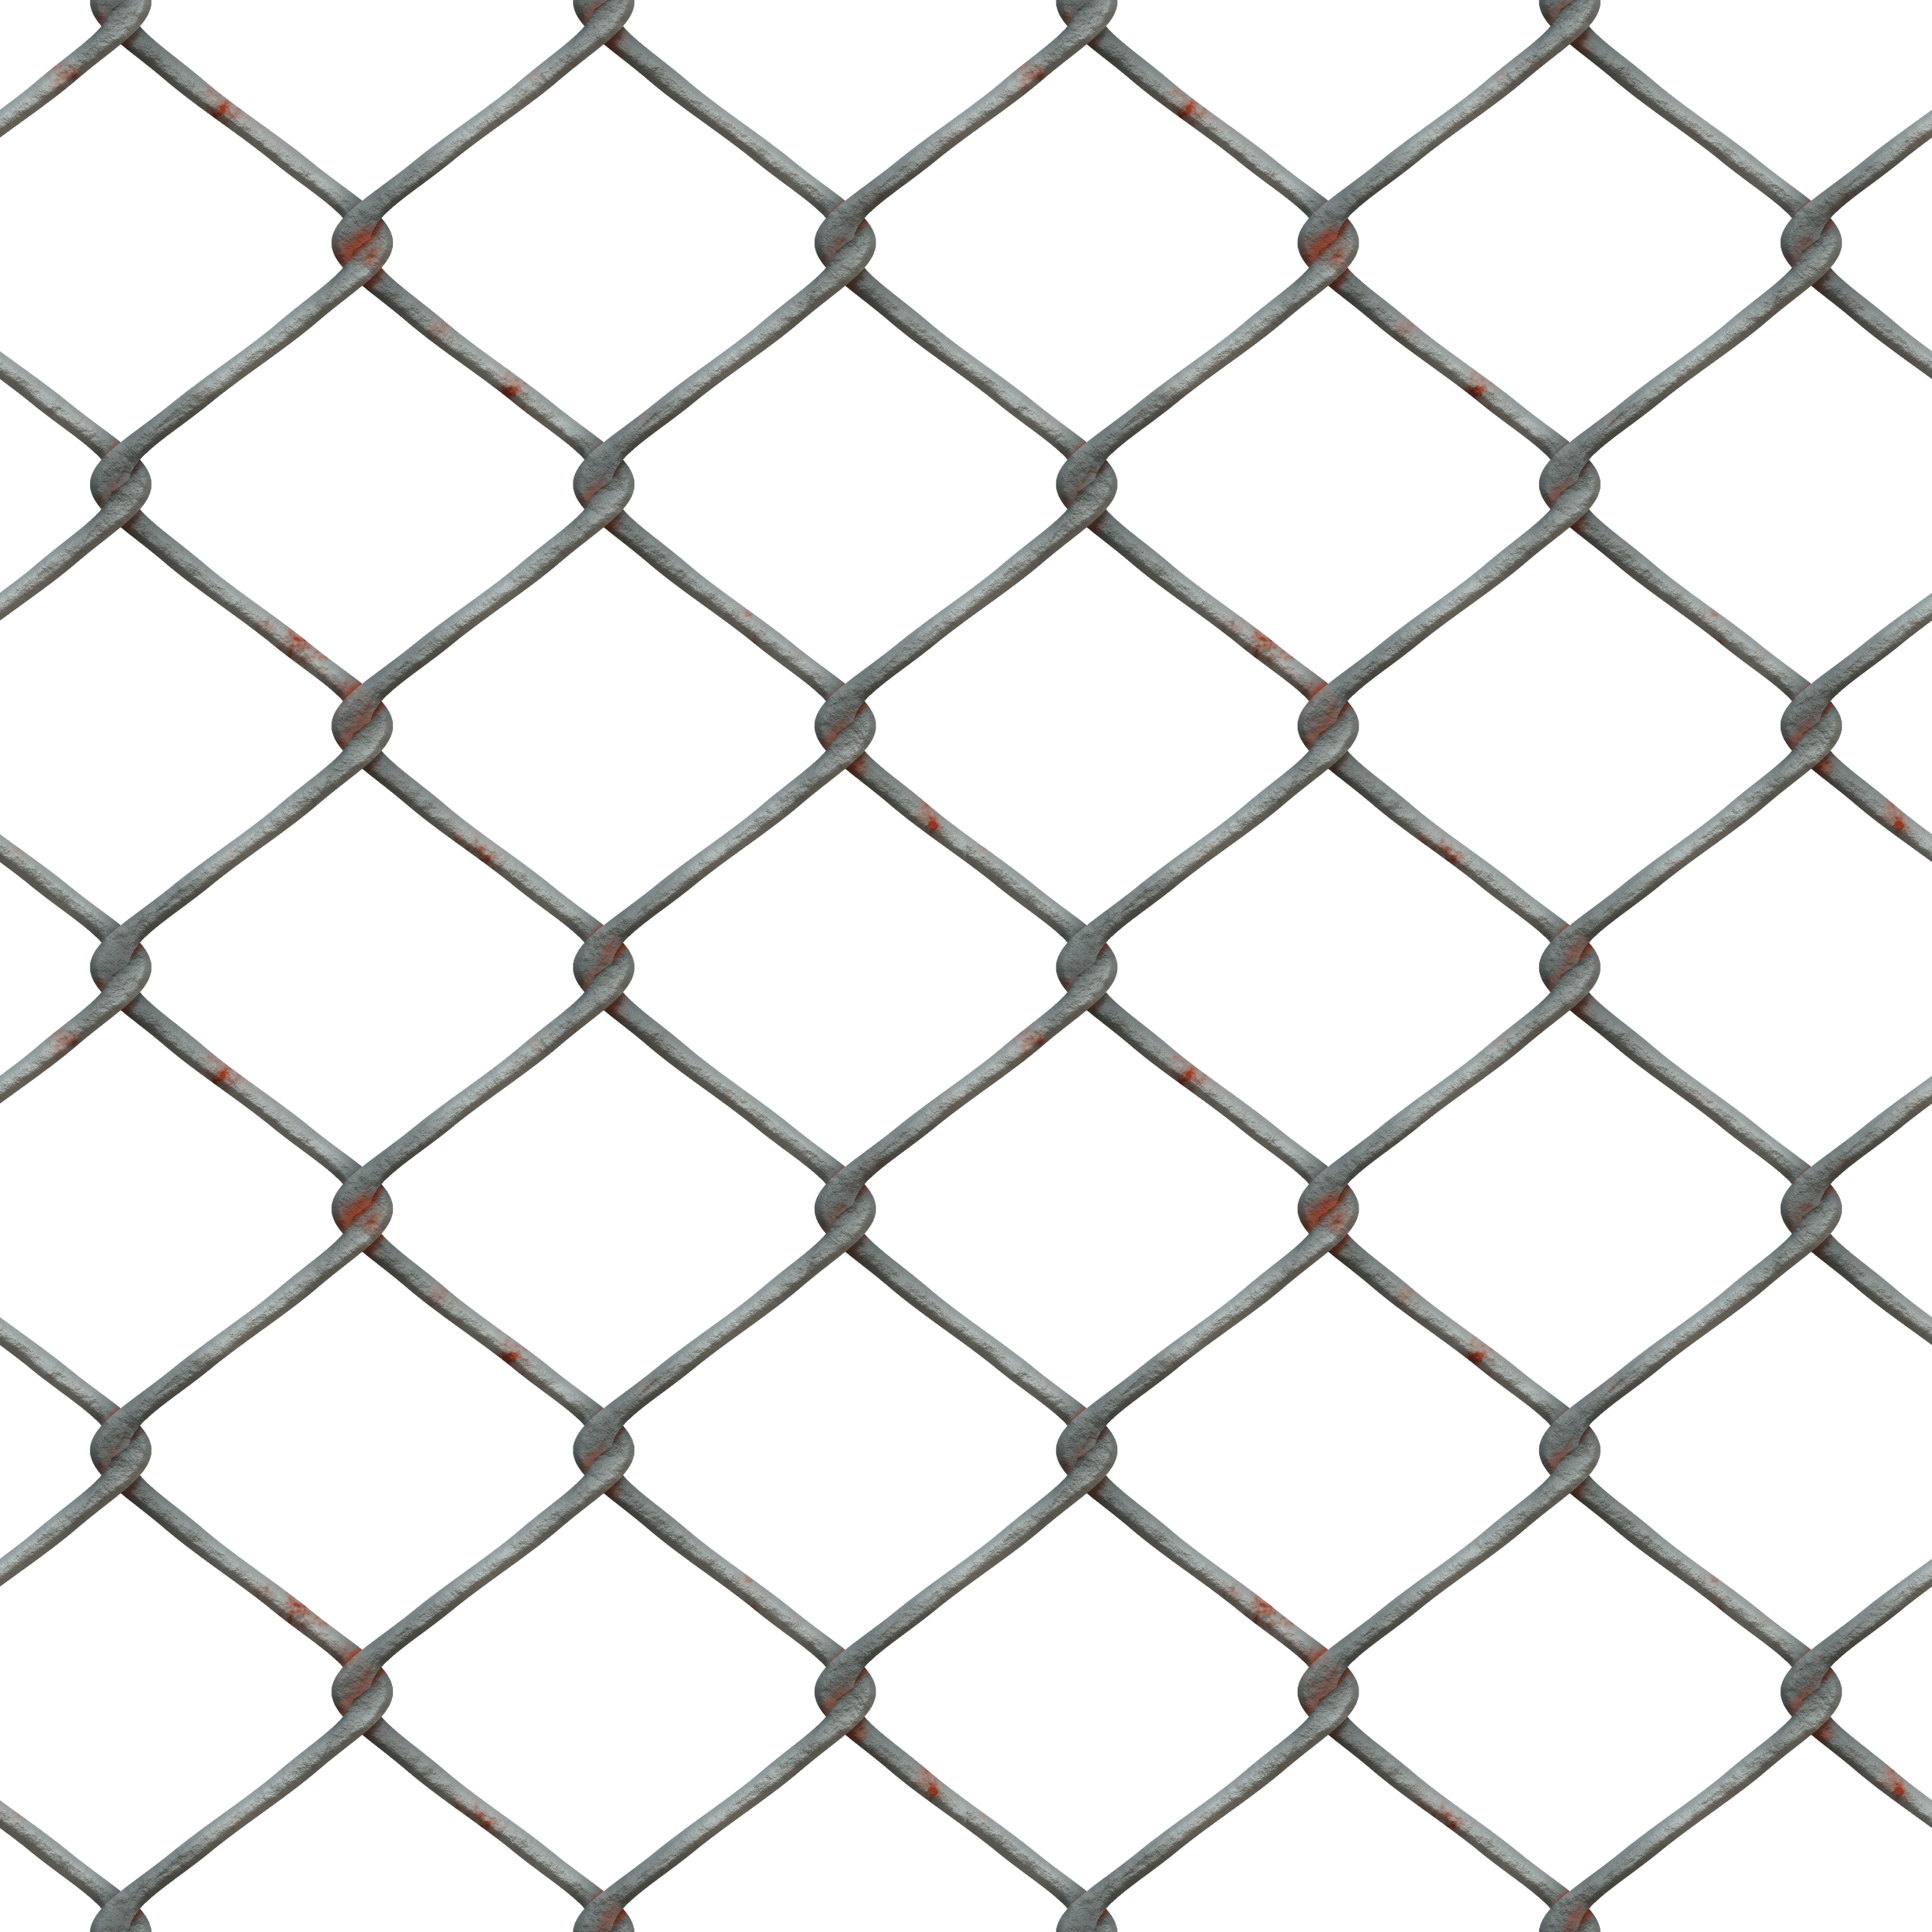 Metal Fence Png Fence Metal Png Chain Fence Chain Link Fence Metal Fence